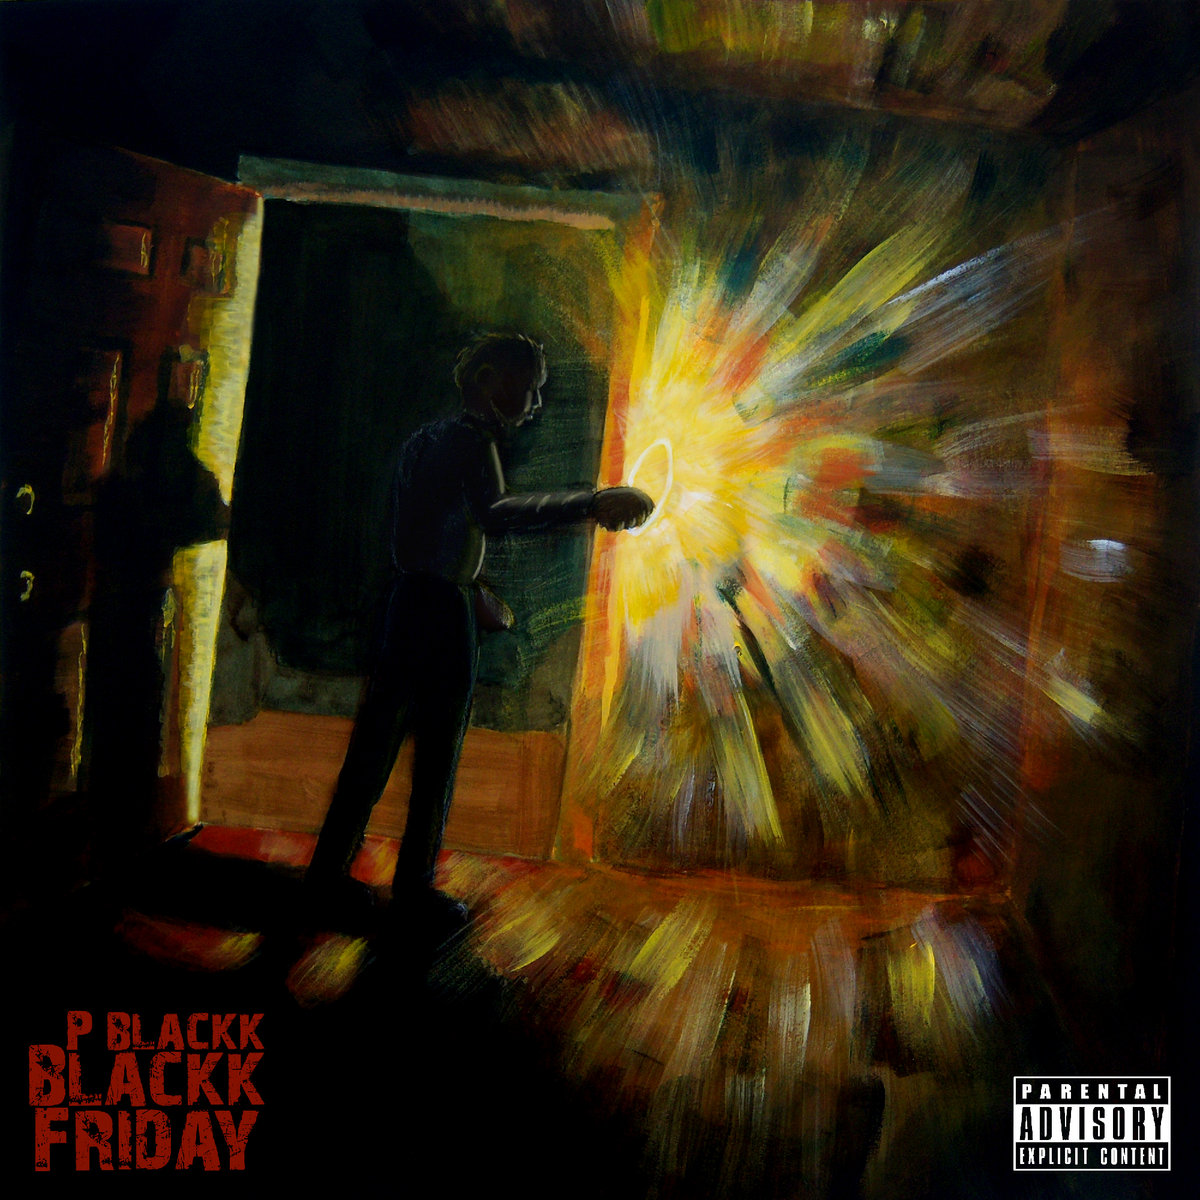 Blackk Friday | P. Blackk